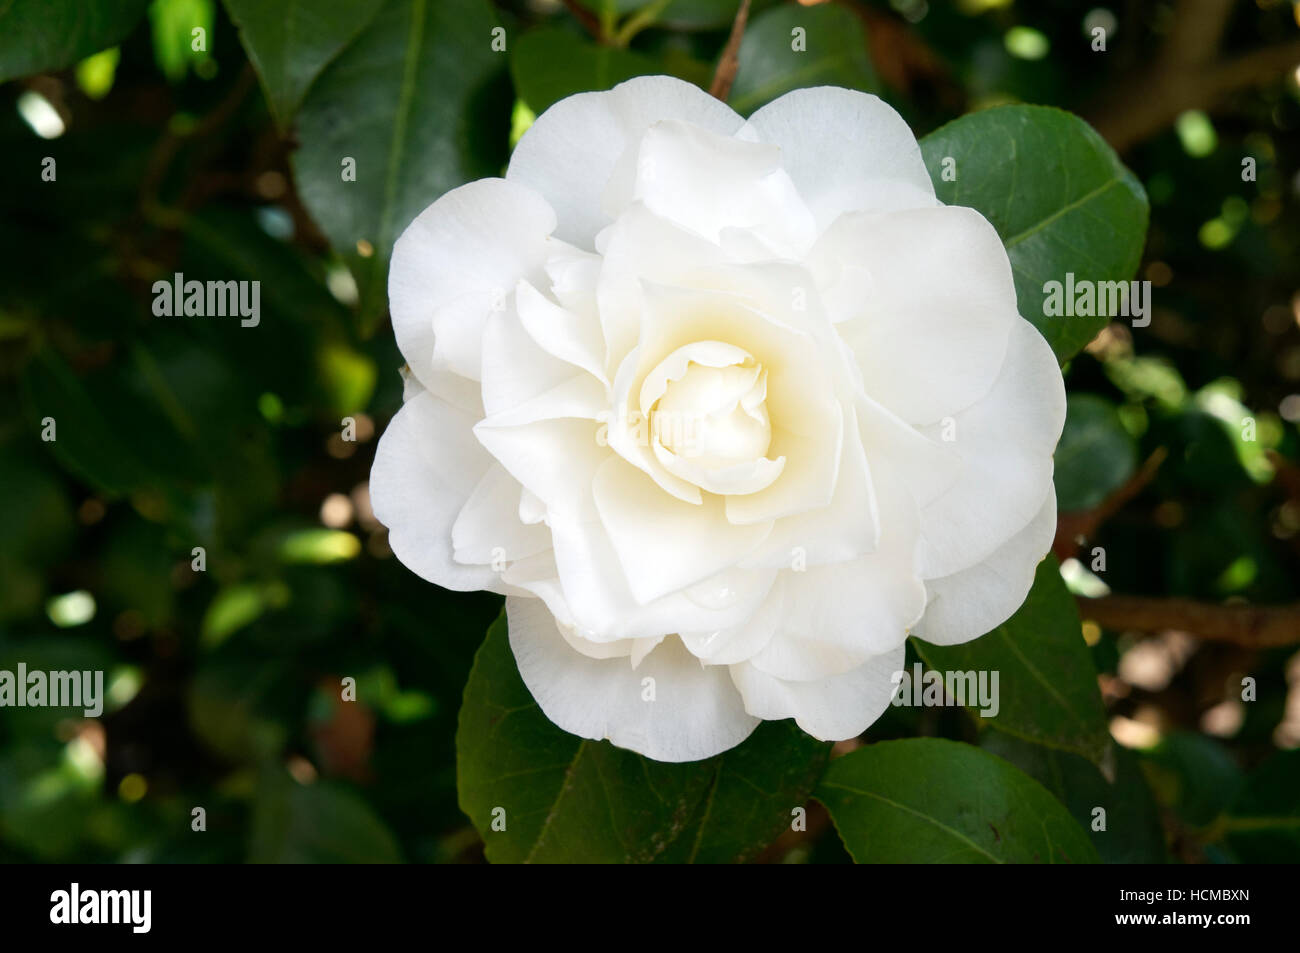 Closeup of a white camellia flower in spring stock photo 128296861 closeup of a white camellia flower in spring mightylinksfo